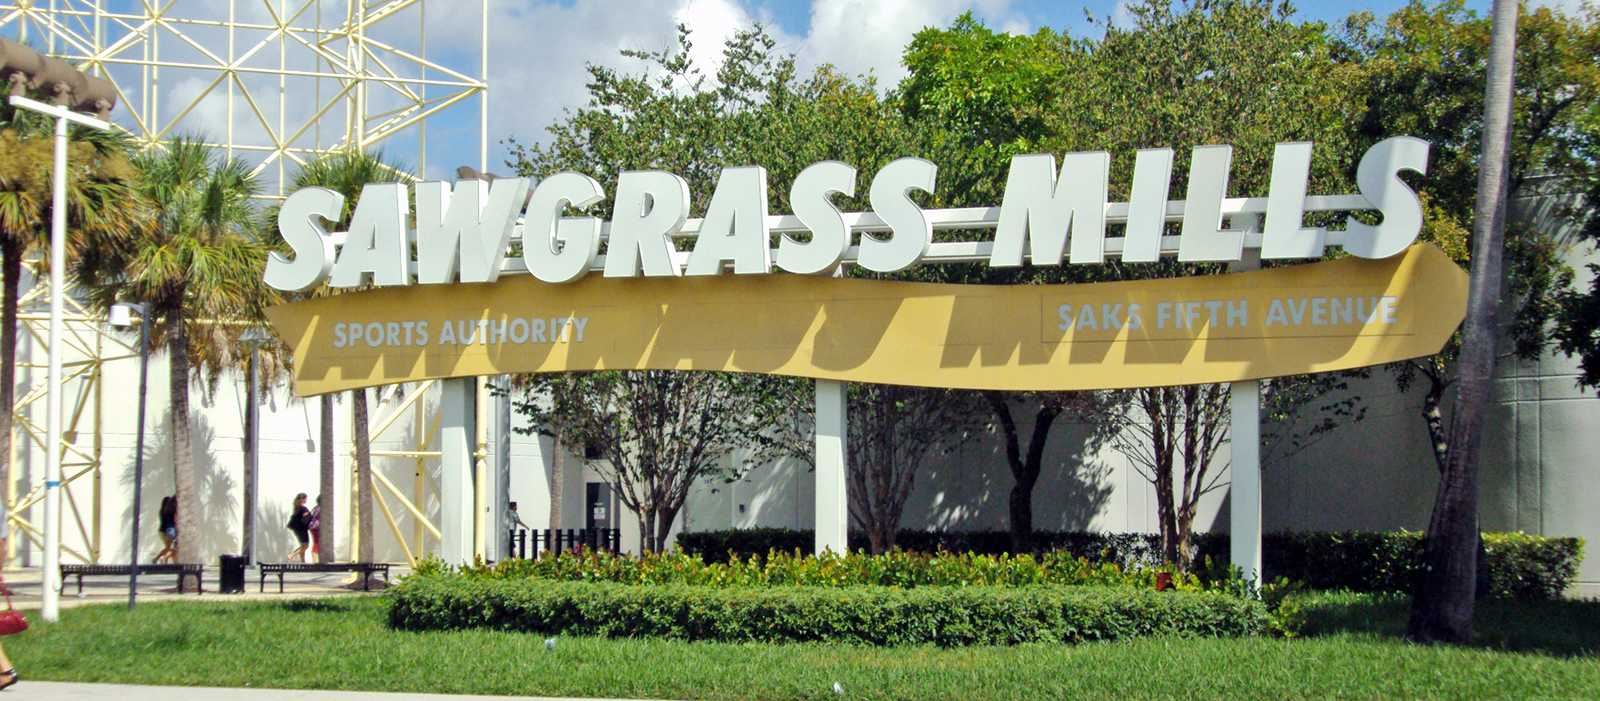 Sawgrass Mill Mall